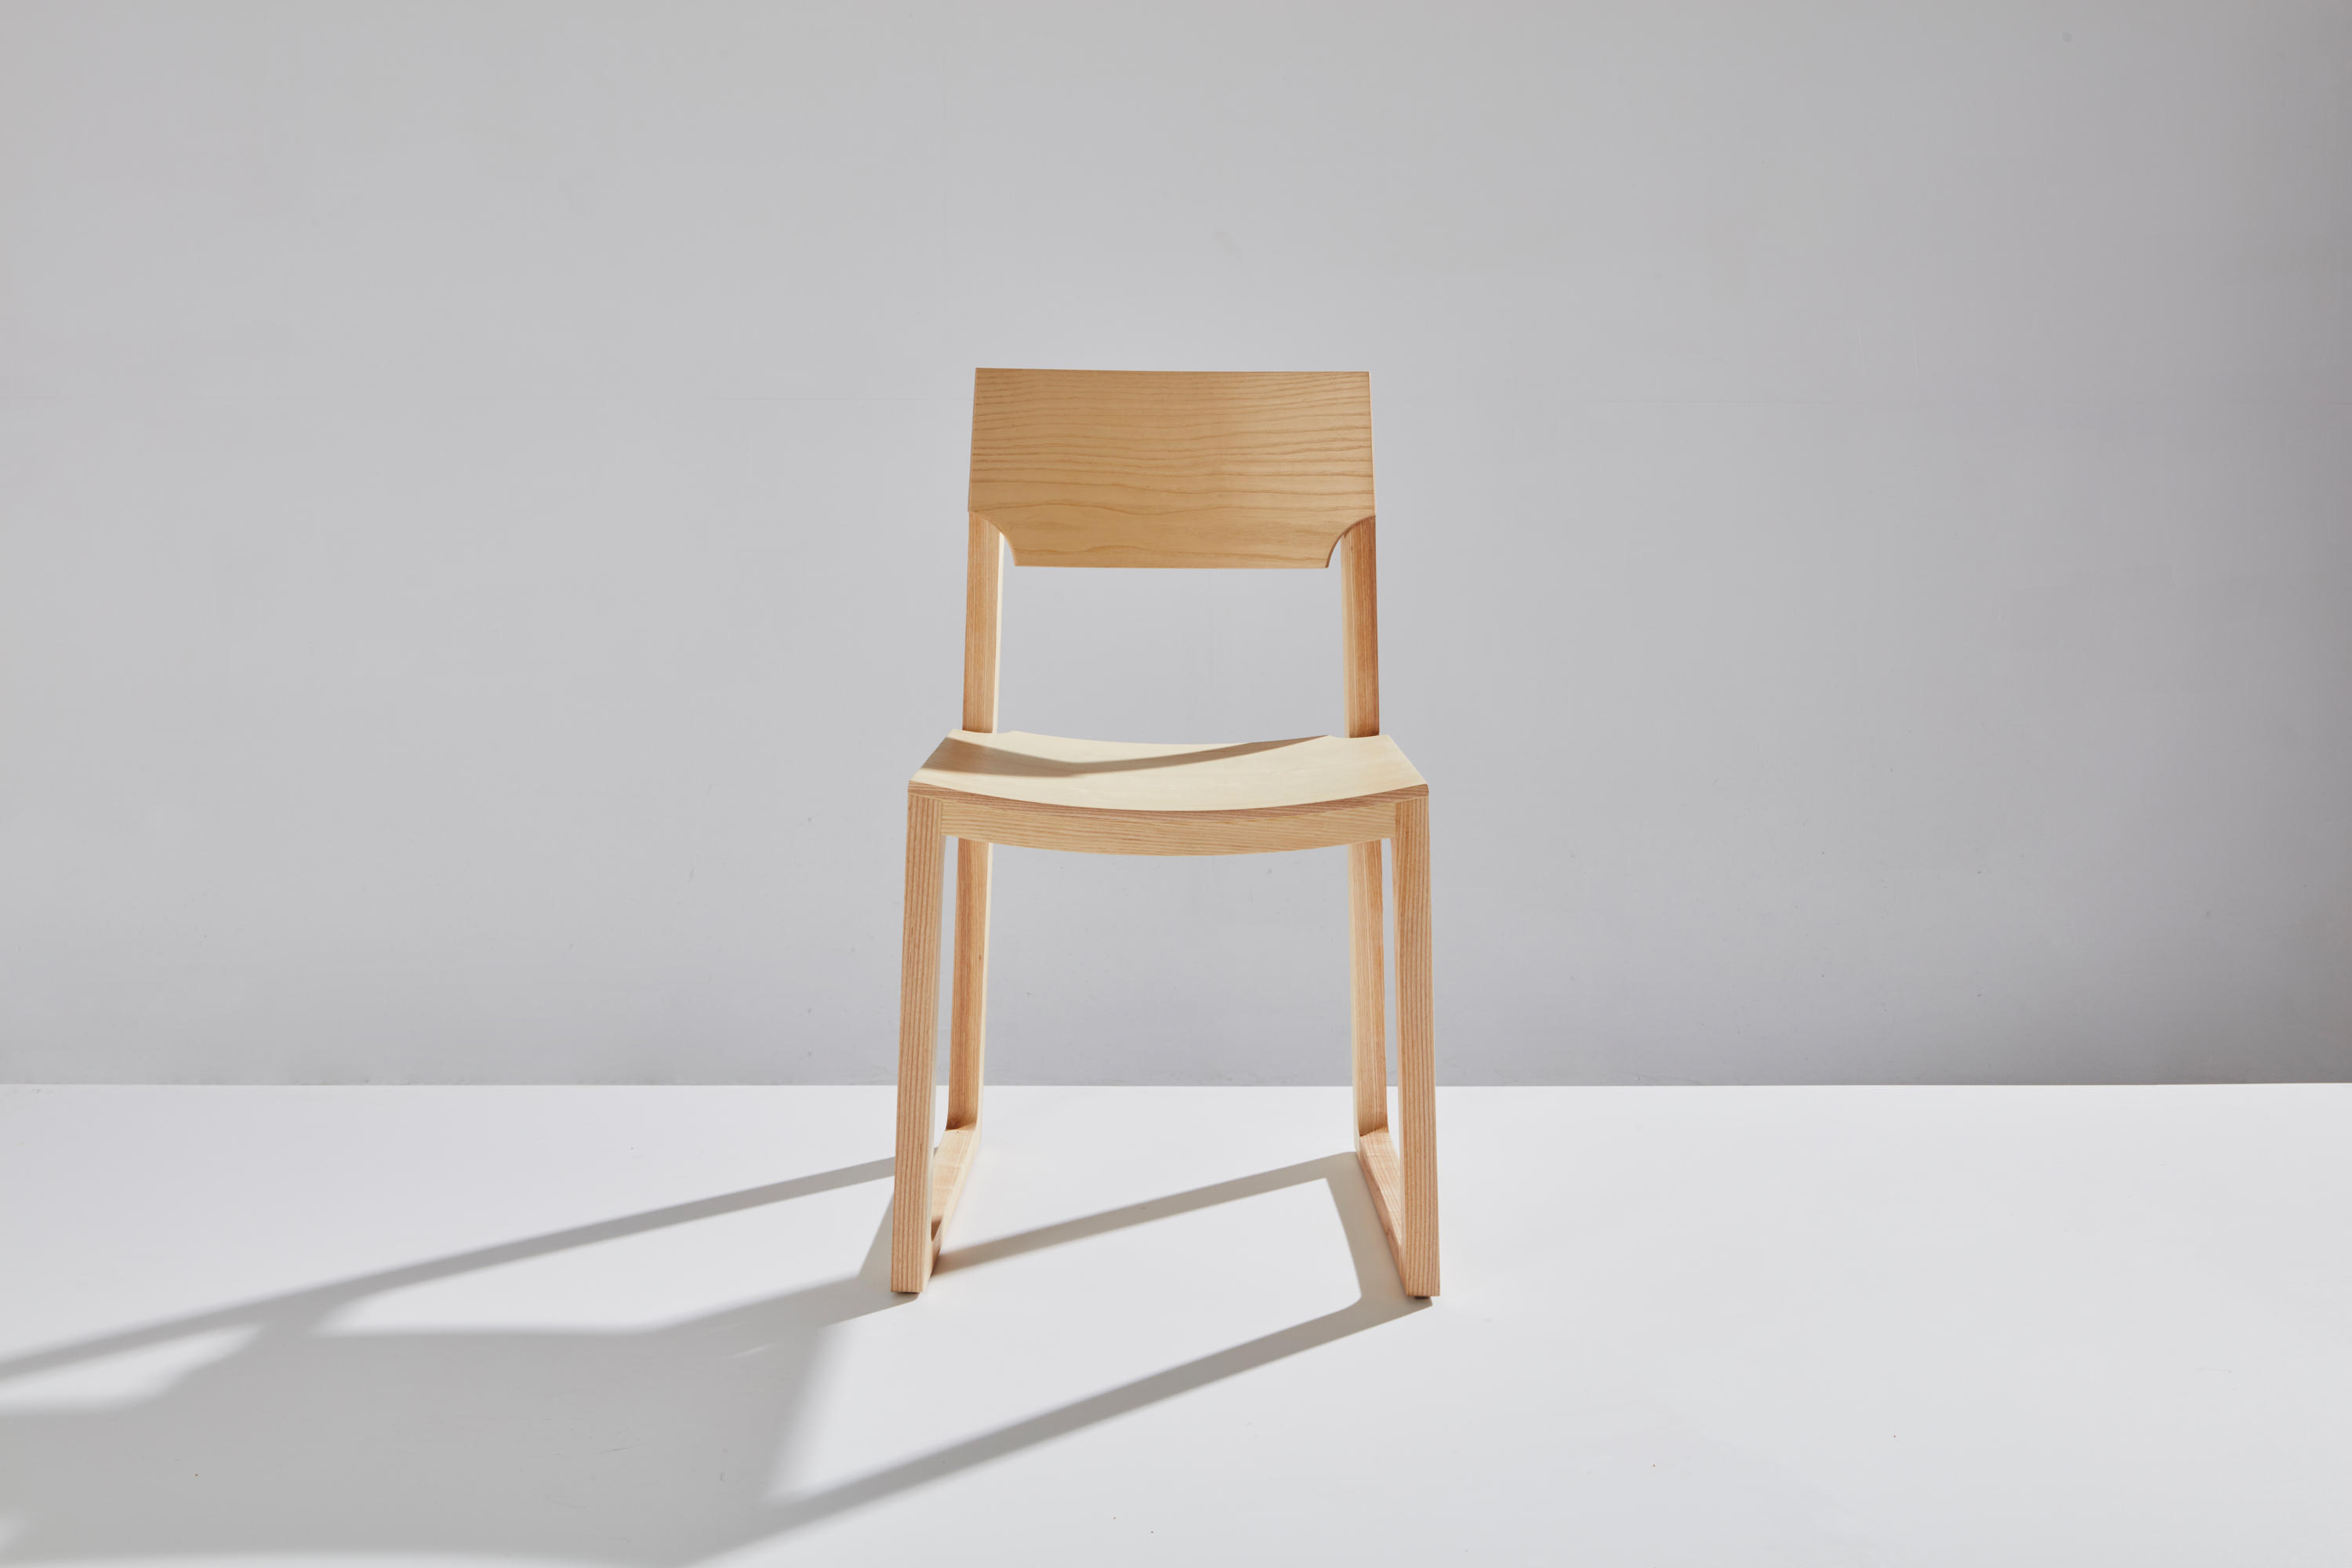 ... Cub Chair By DesignByThem